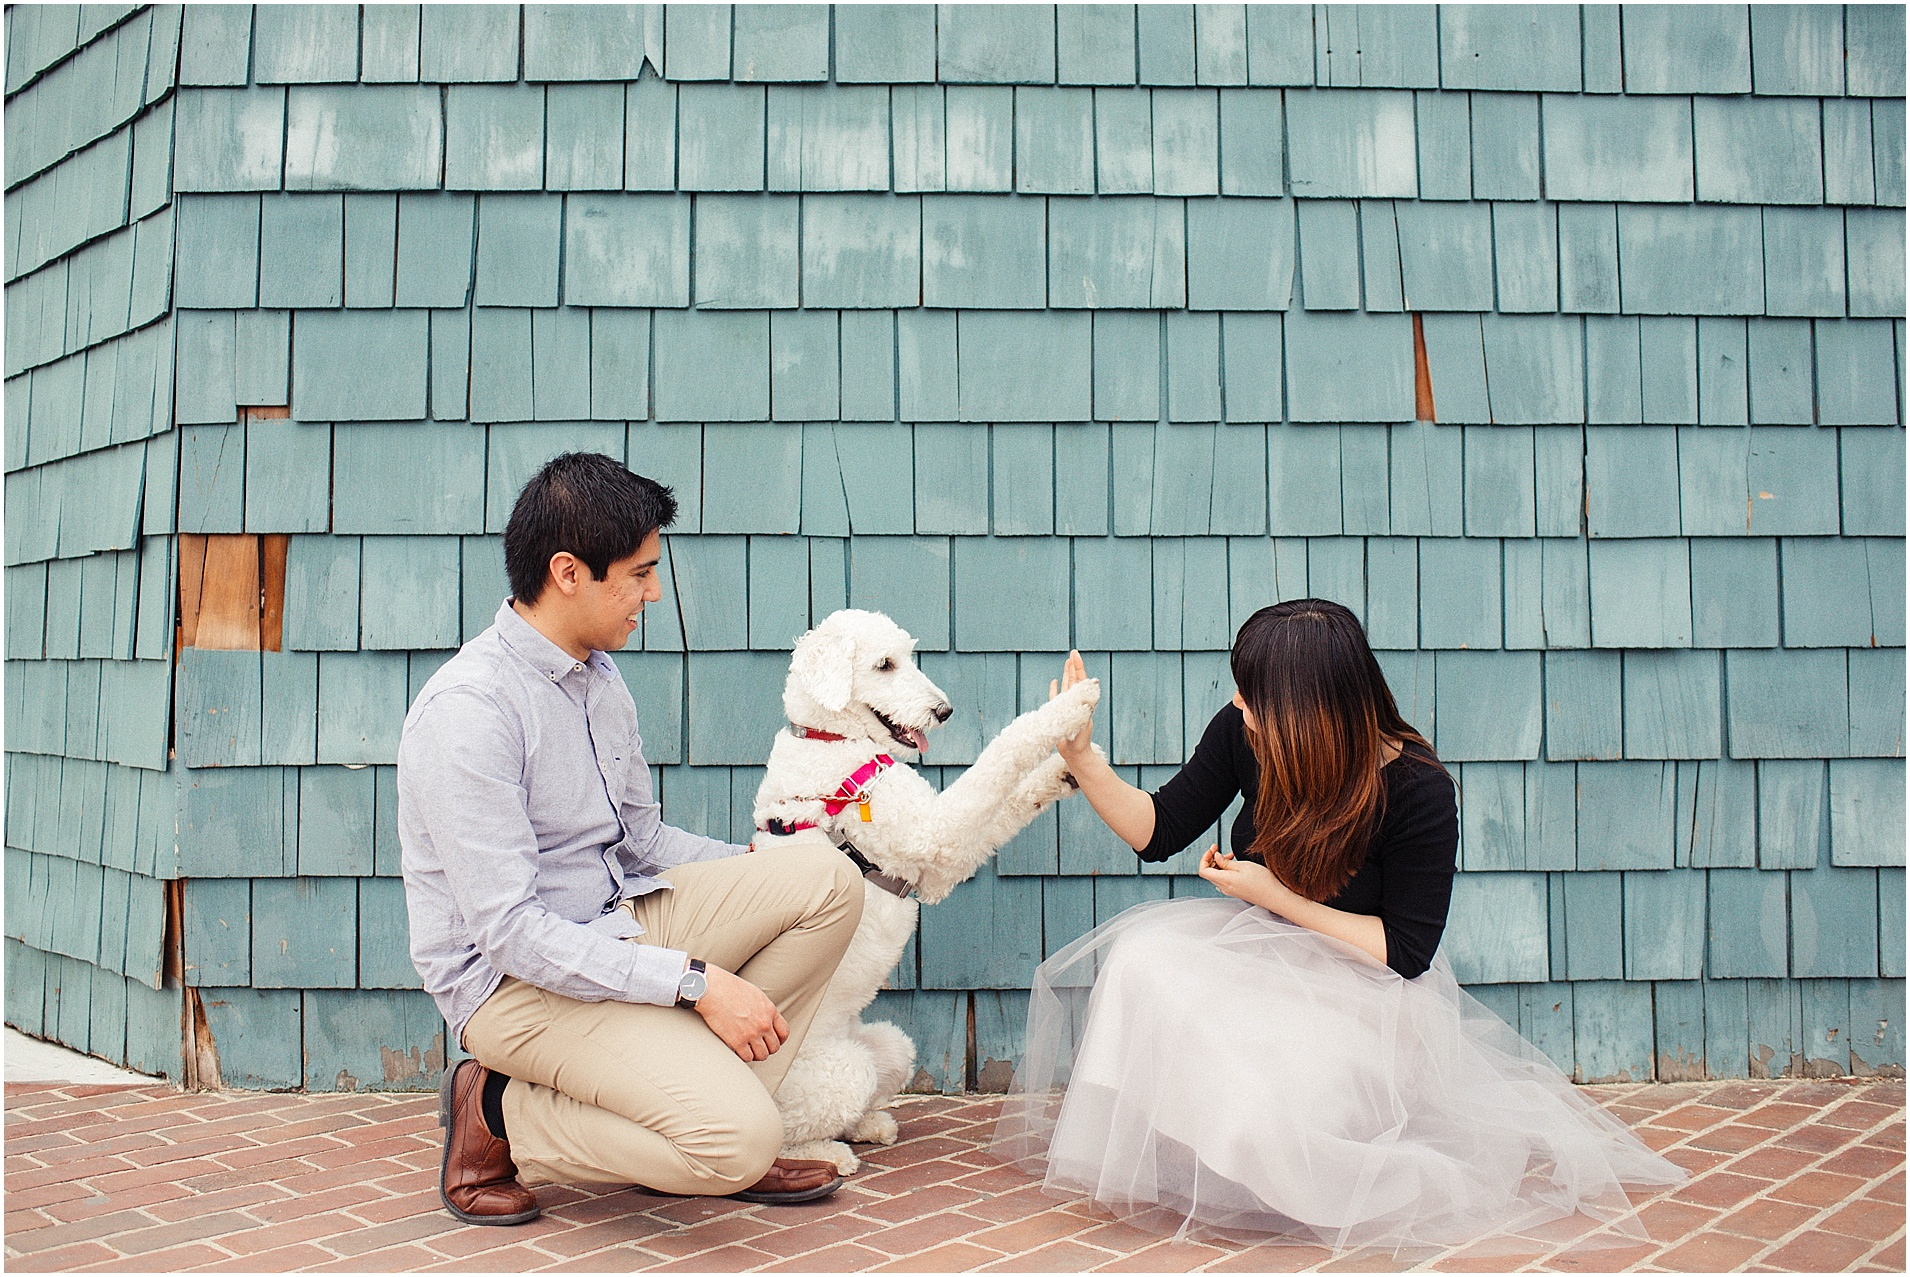 Old Town Alexandria Engagement Session with Goldendoodle puppy at Fletcher's Boathouse